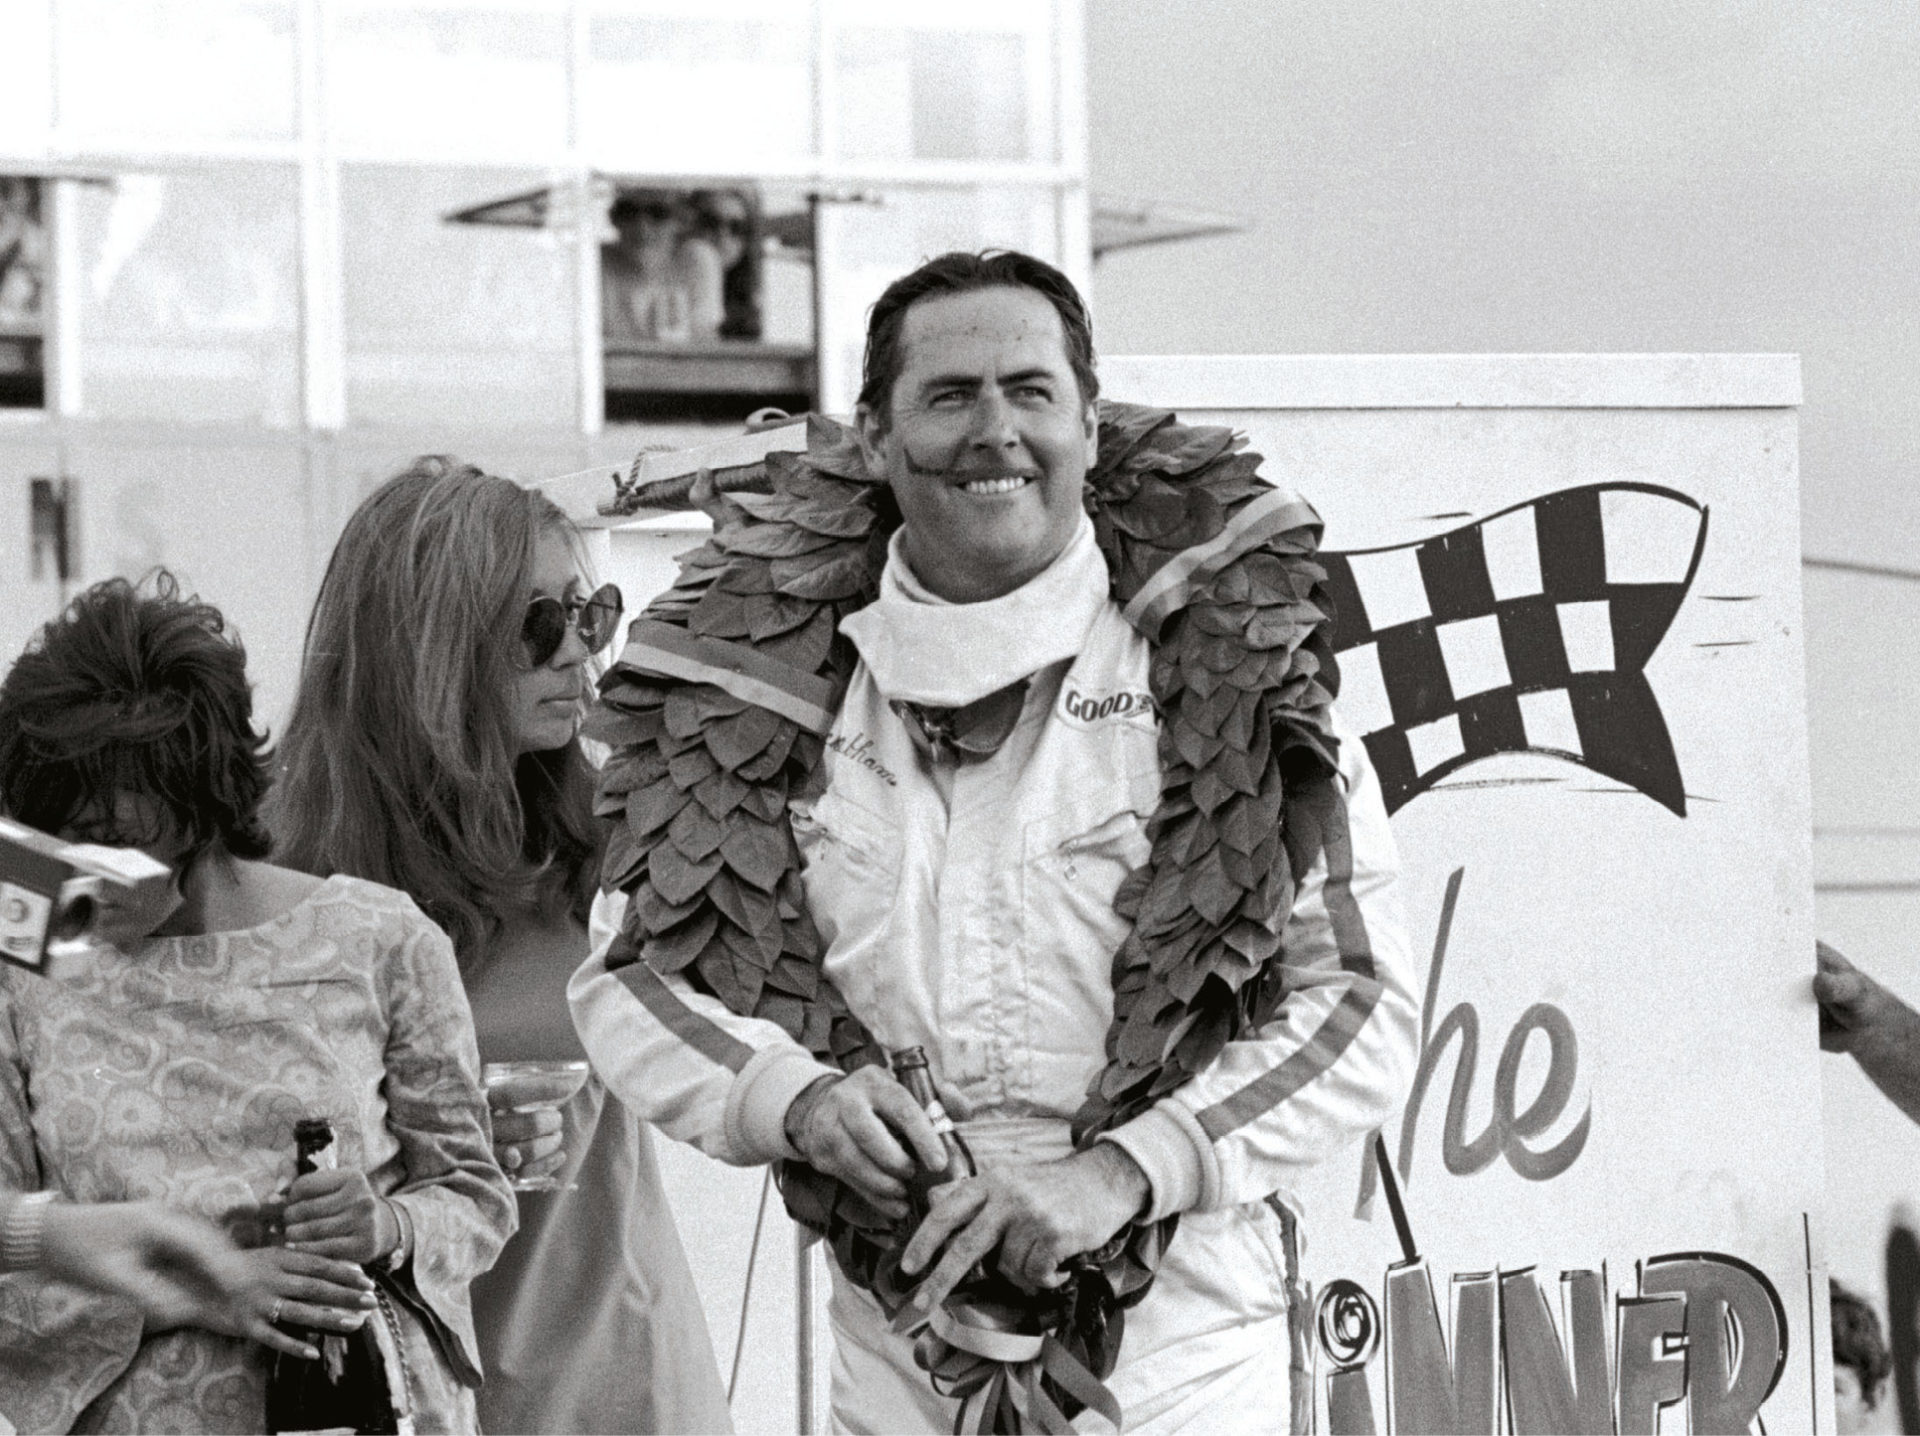 Jack Brabham after his final win in a Brabham in 1970. Top, his son David at Brands Hatch in the BT62